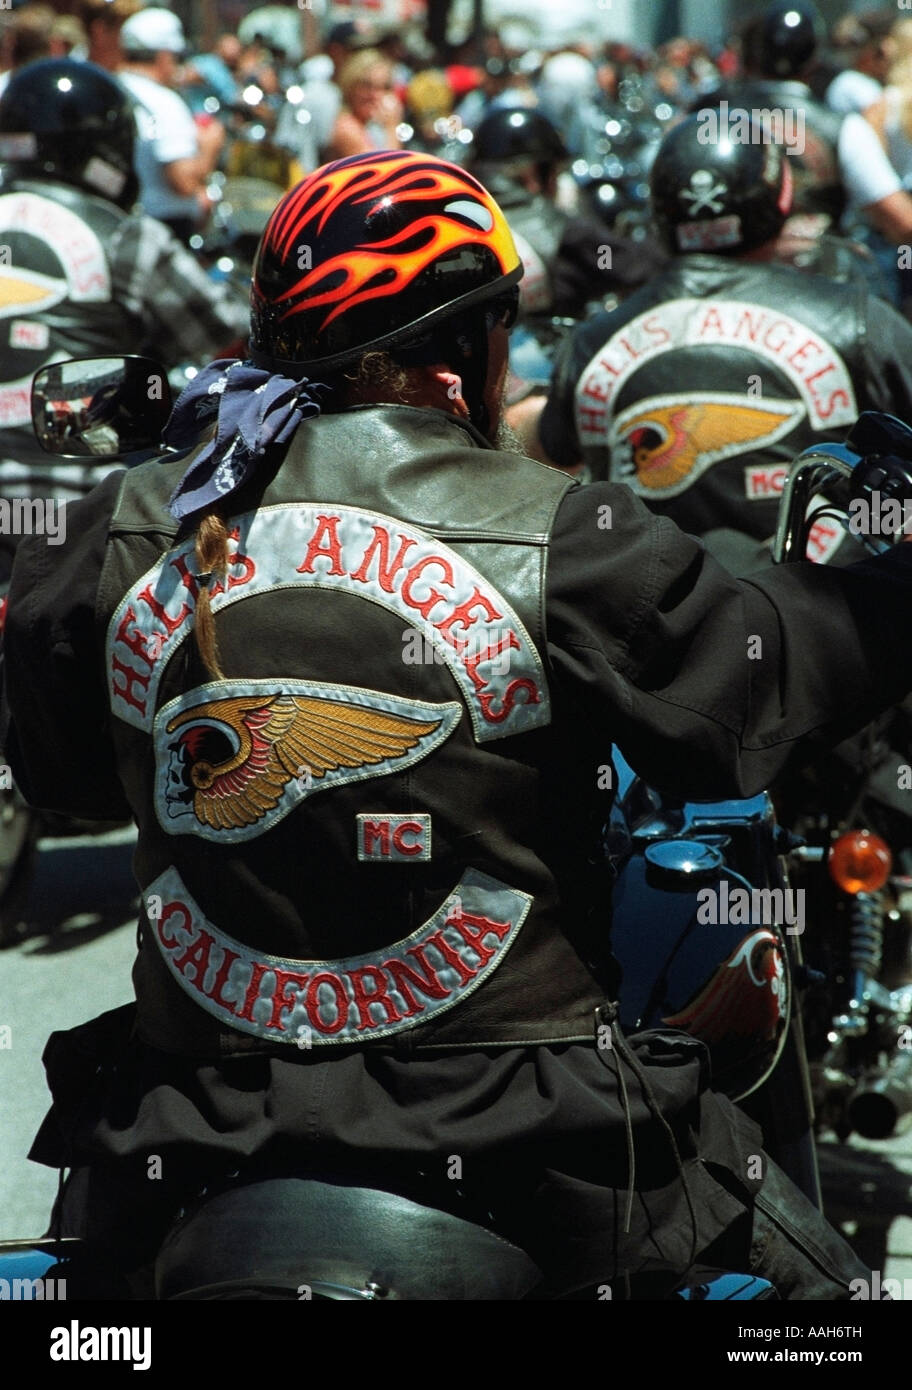 Motorcycle Gangs Stock Photos & Motorcycle Gangs Stock Images - Alamy